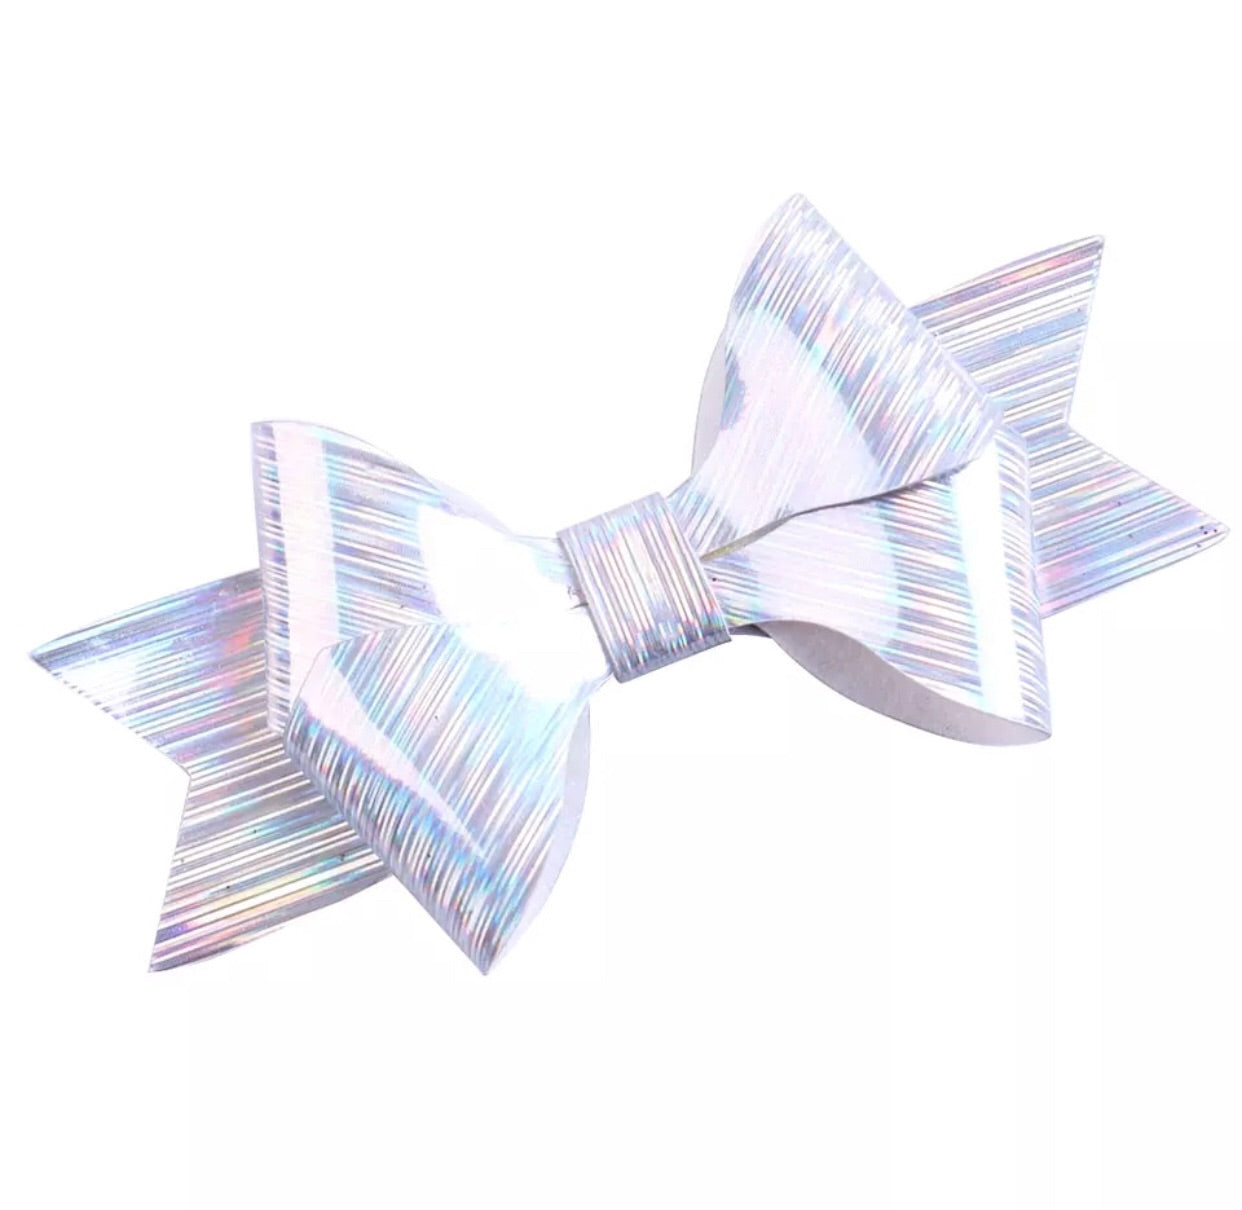 Faux Leather Bow - Metallic Silver - shabbyflowers.com